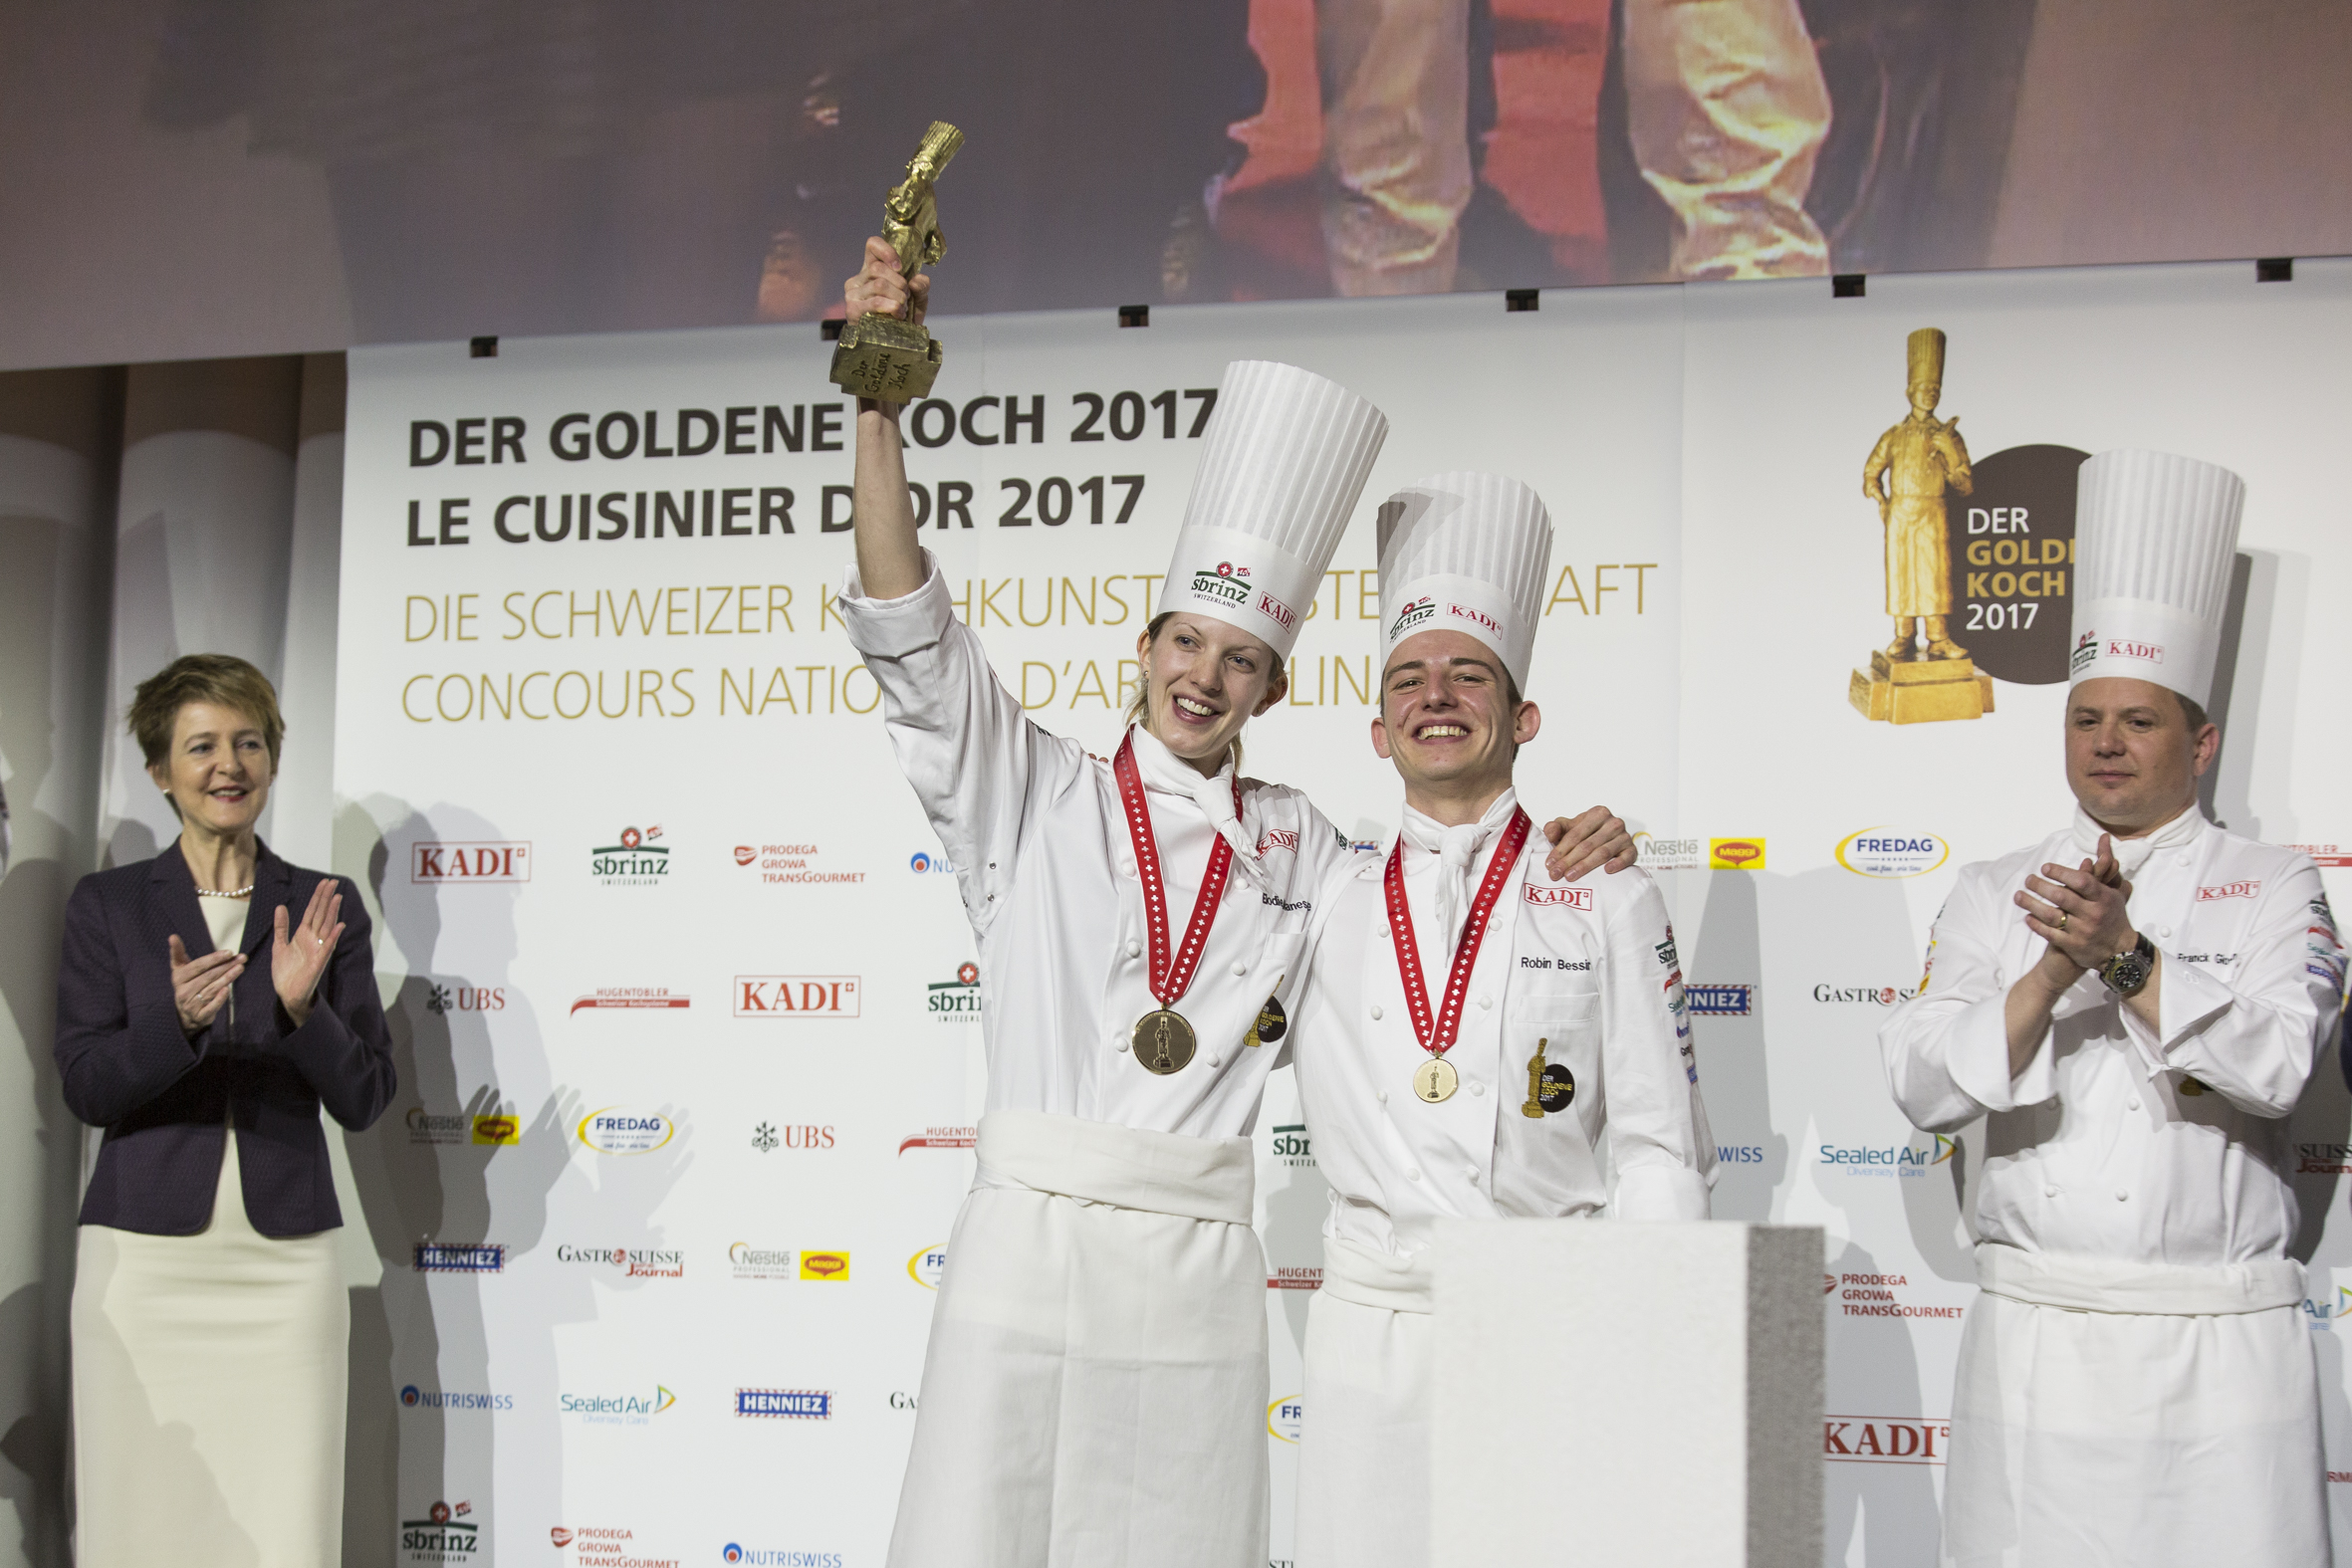 49 goldener koch 2017